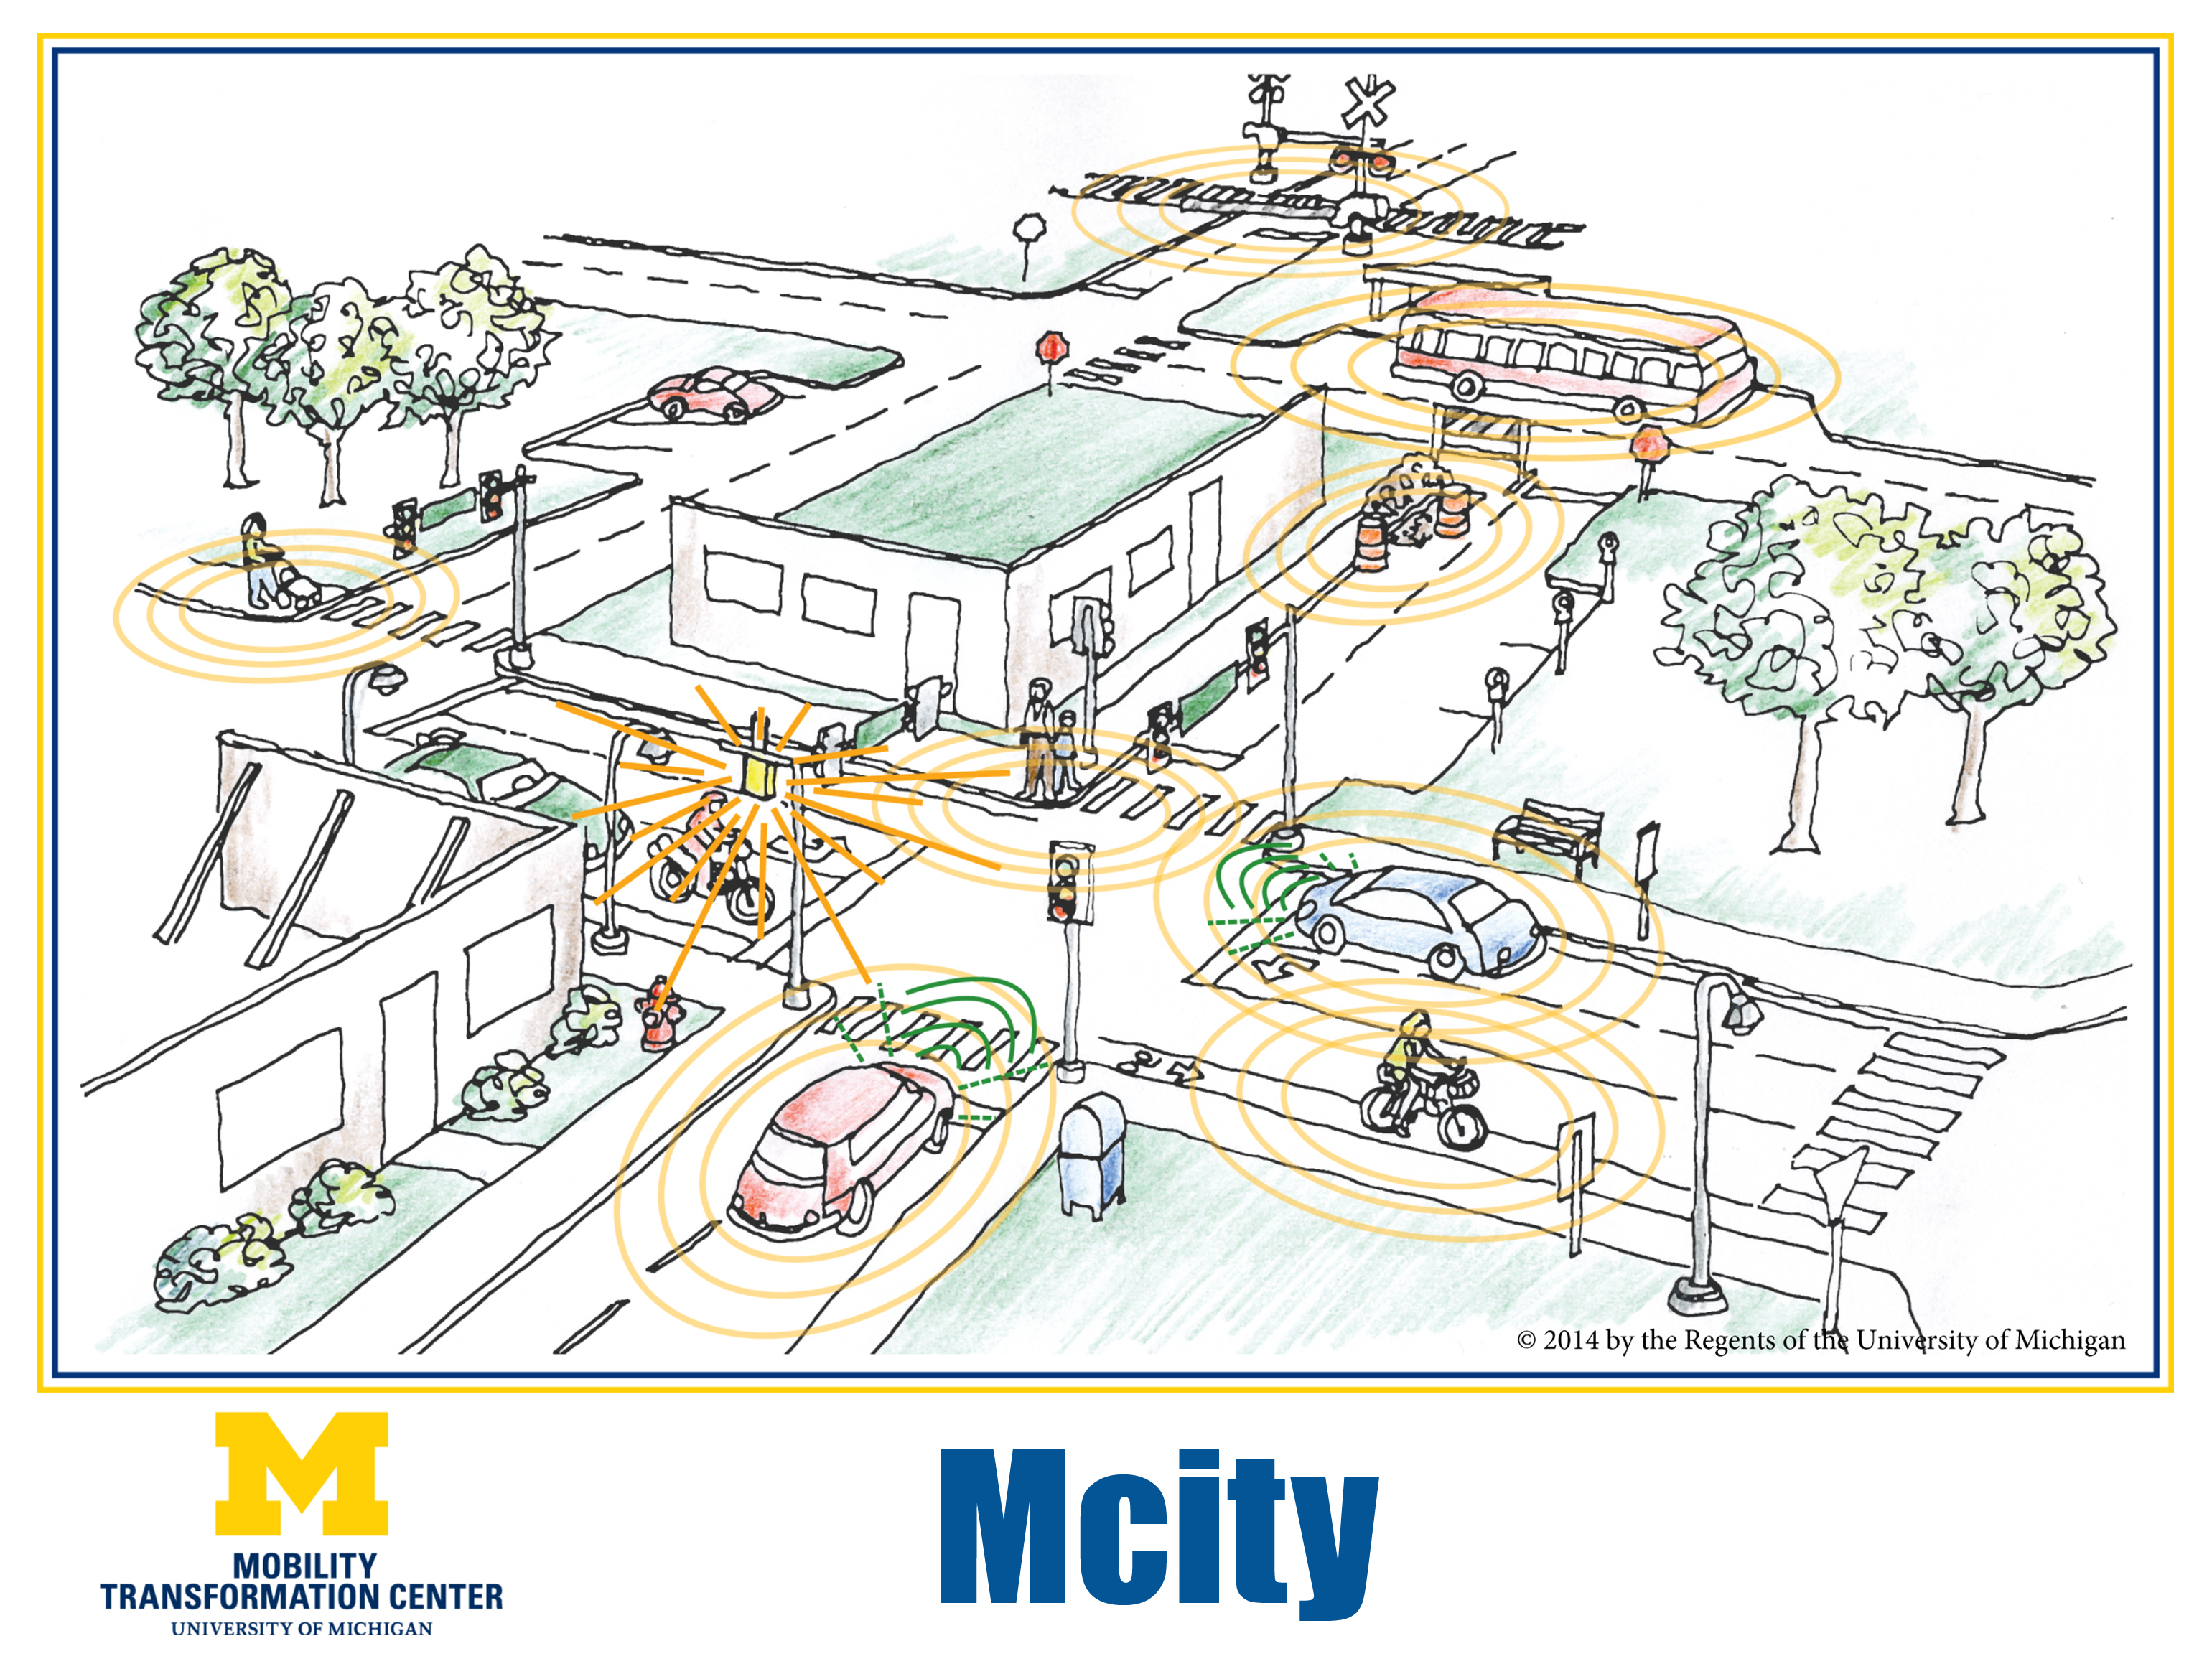 A miniature city on the University of Michigan's campus is paving the way for the future of mobility.